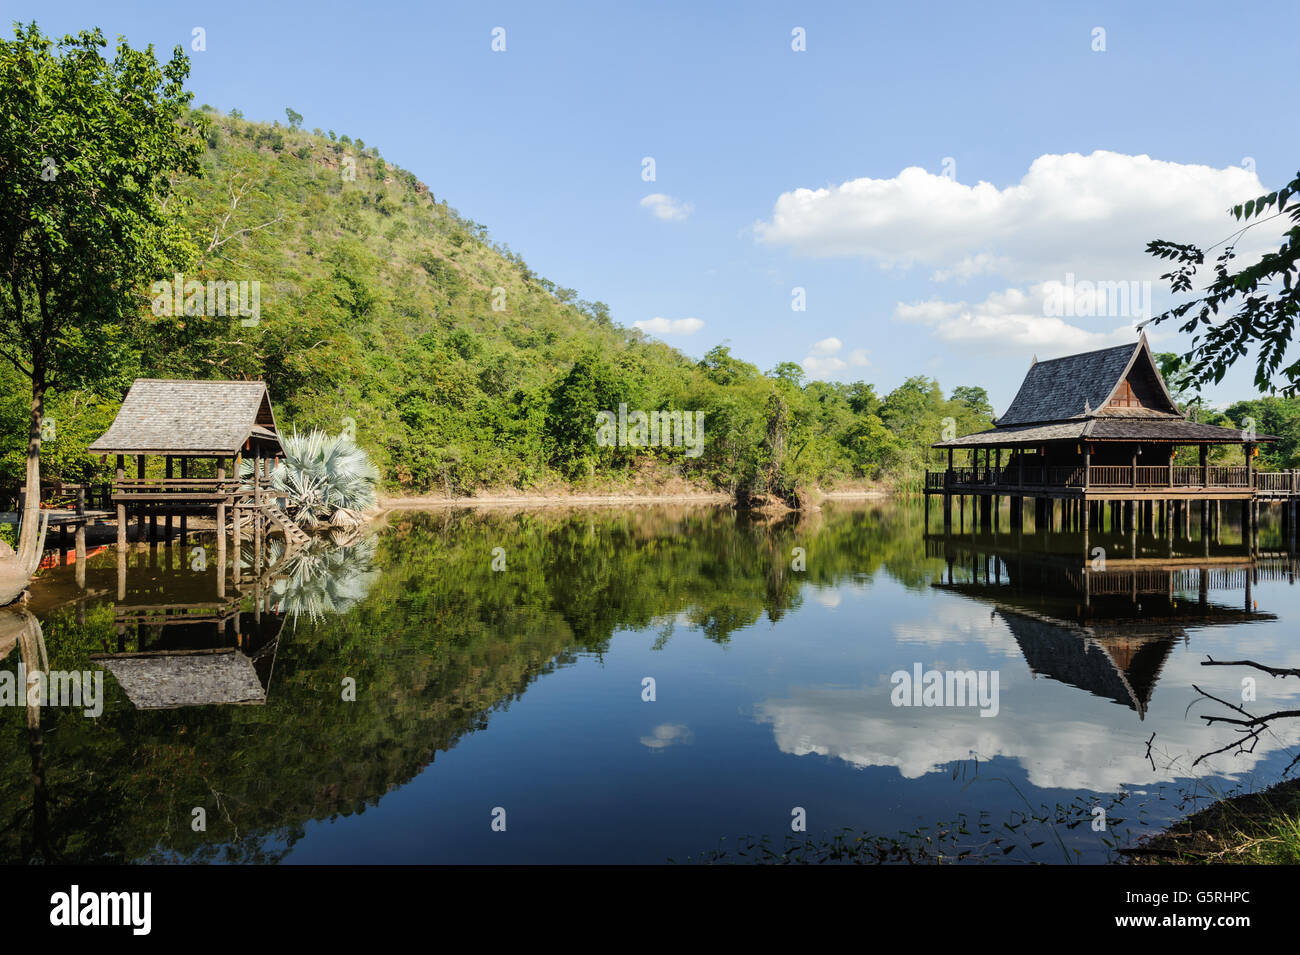 Pavilion reflection of water lake in Thailand - Stock Image